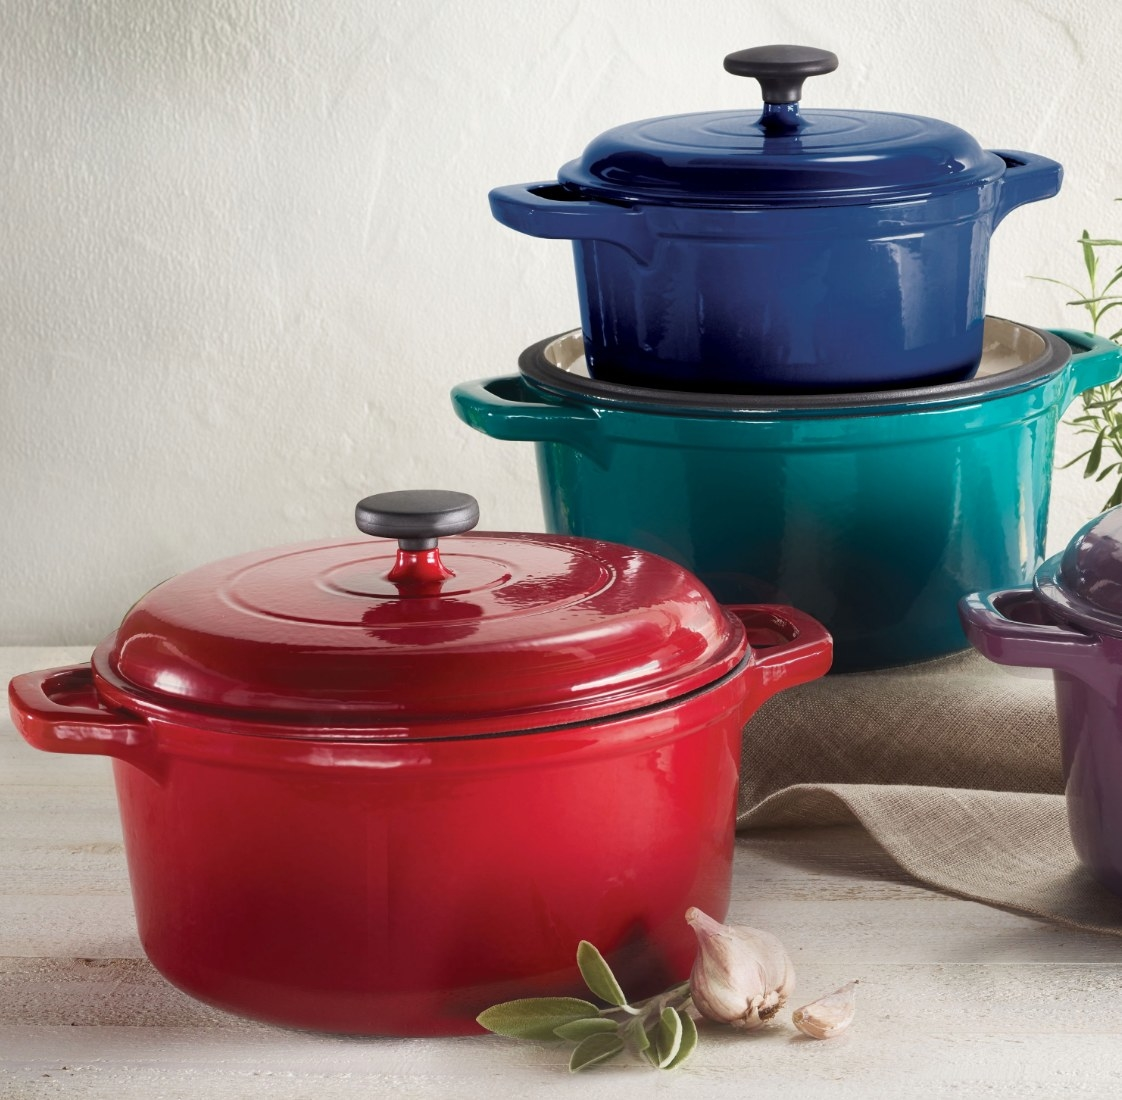 The enamel cast iron dutch ovens in three different colors